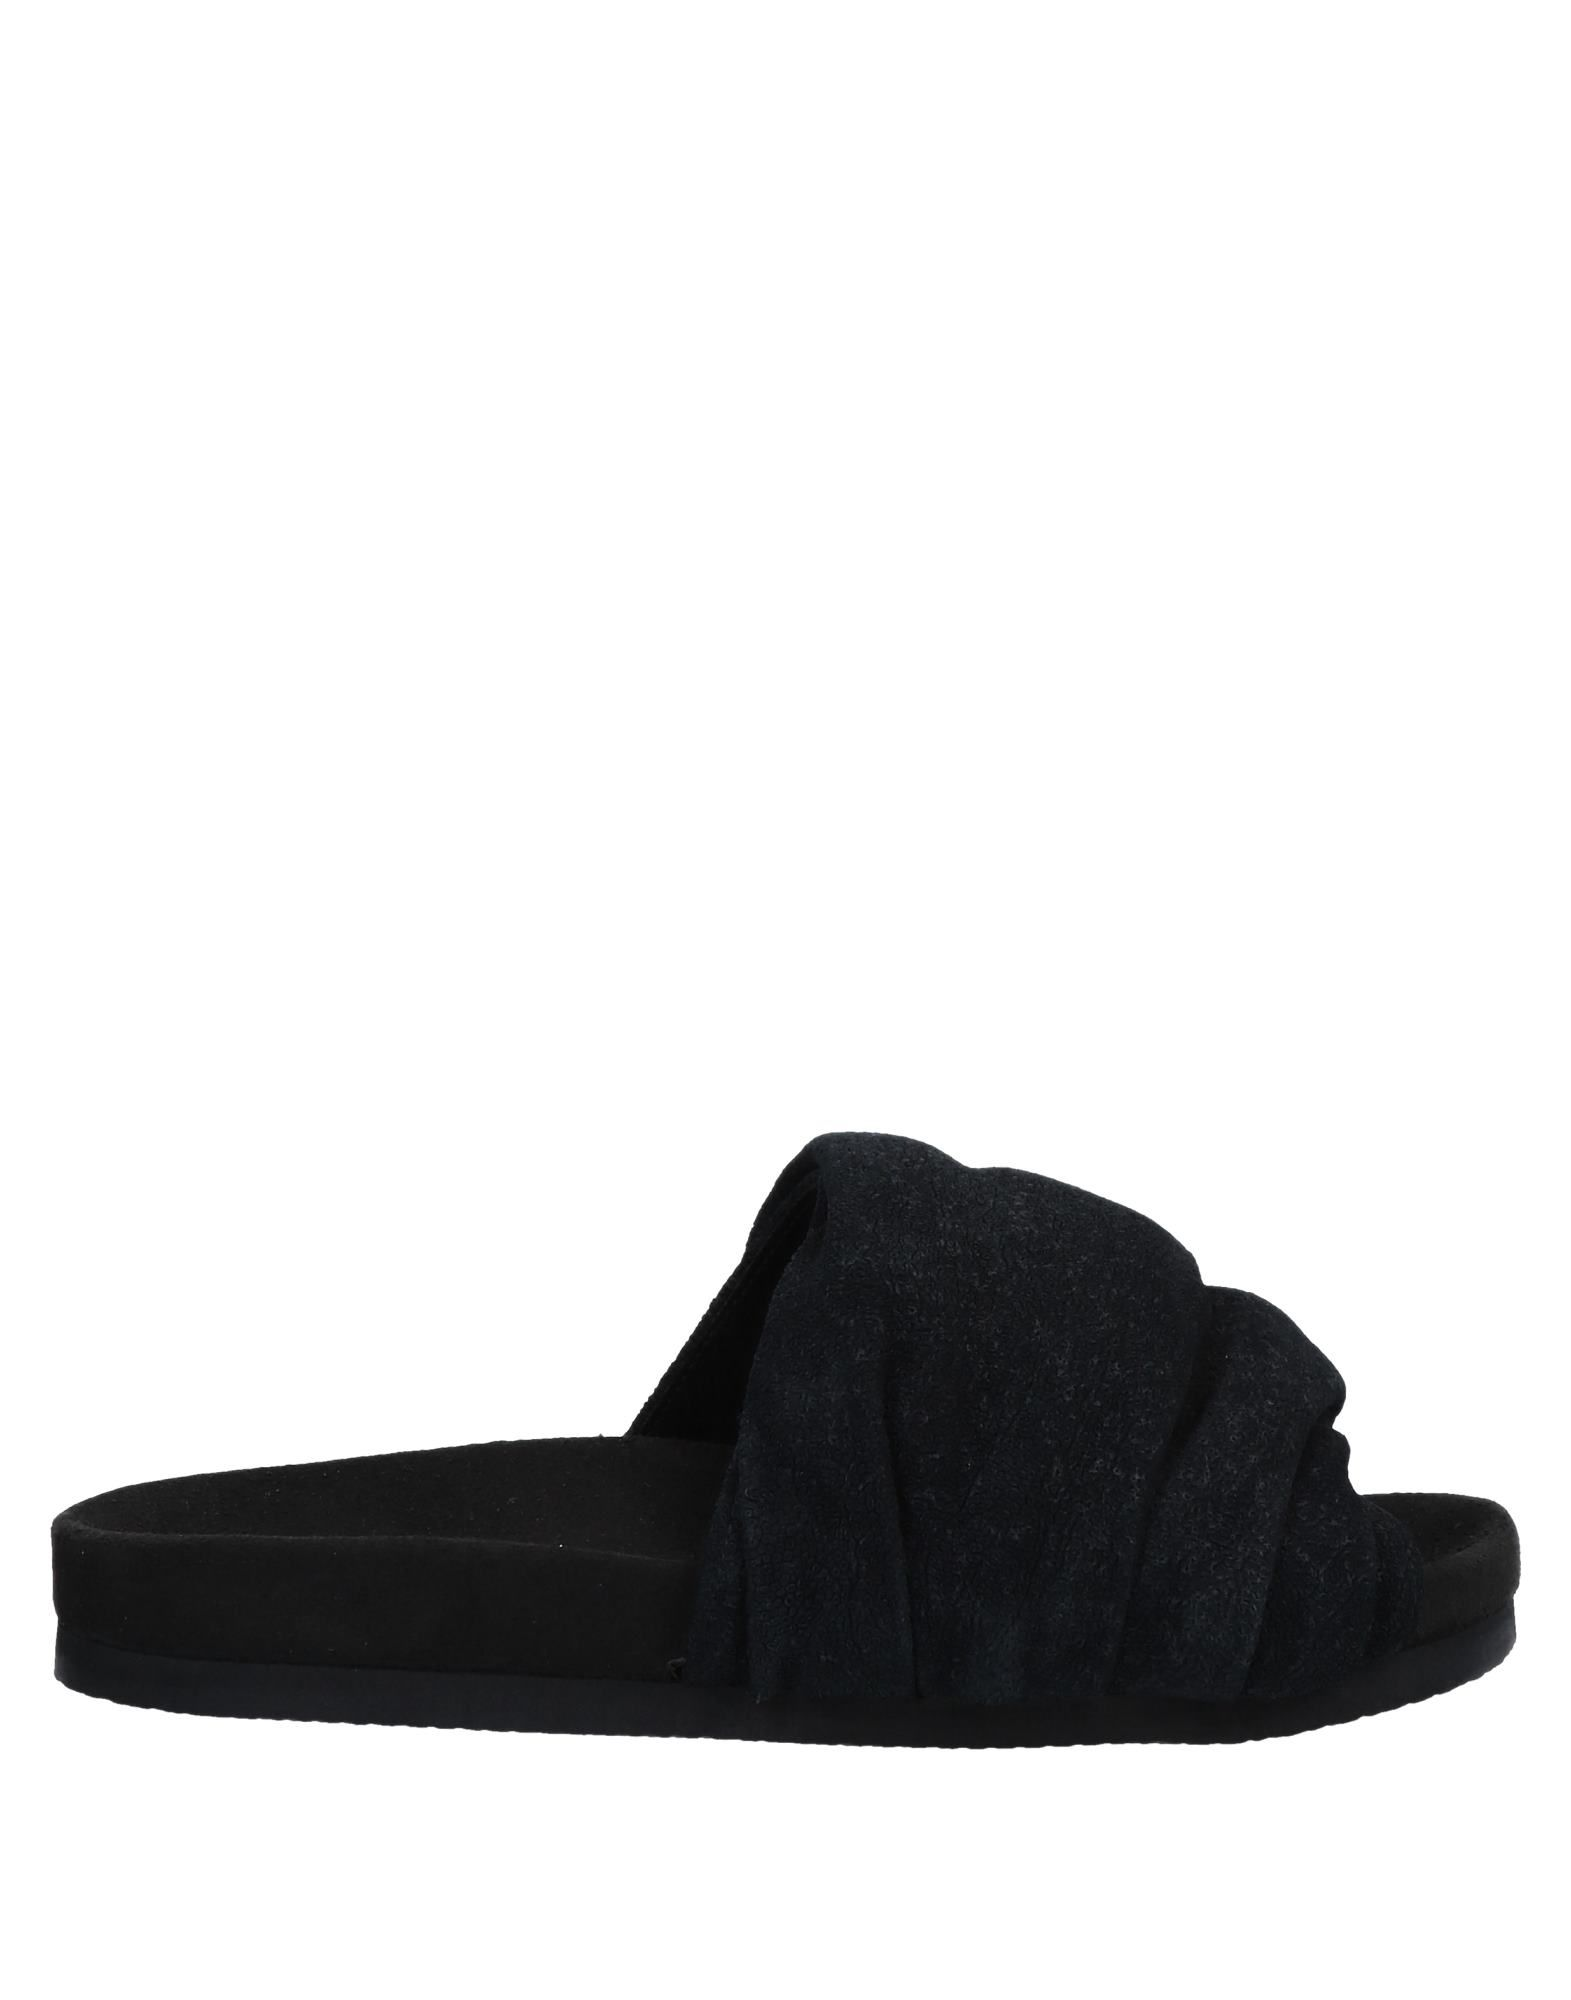 Peter Peter Non Sandals - Women Peter Peter Non Sandals online on  United Kingdom - 11508766HK f478f1